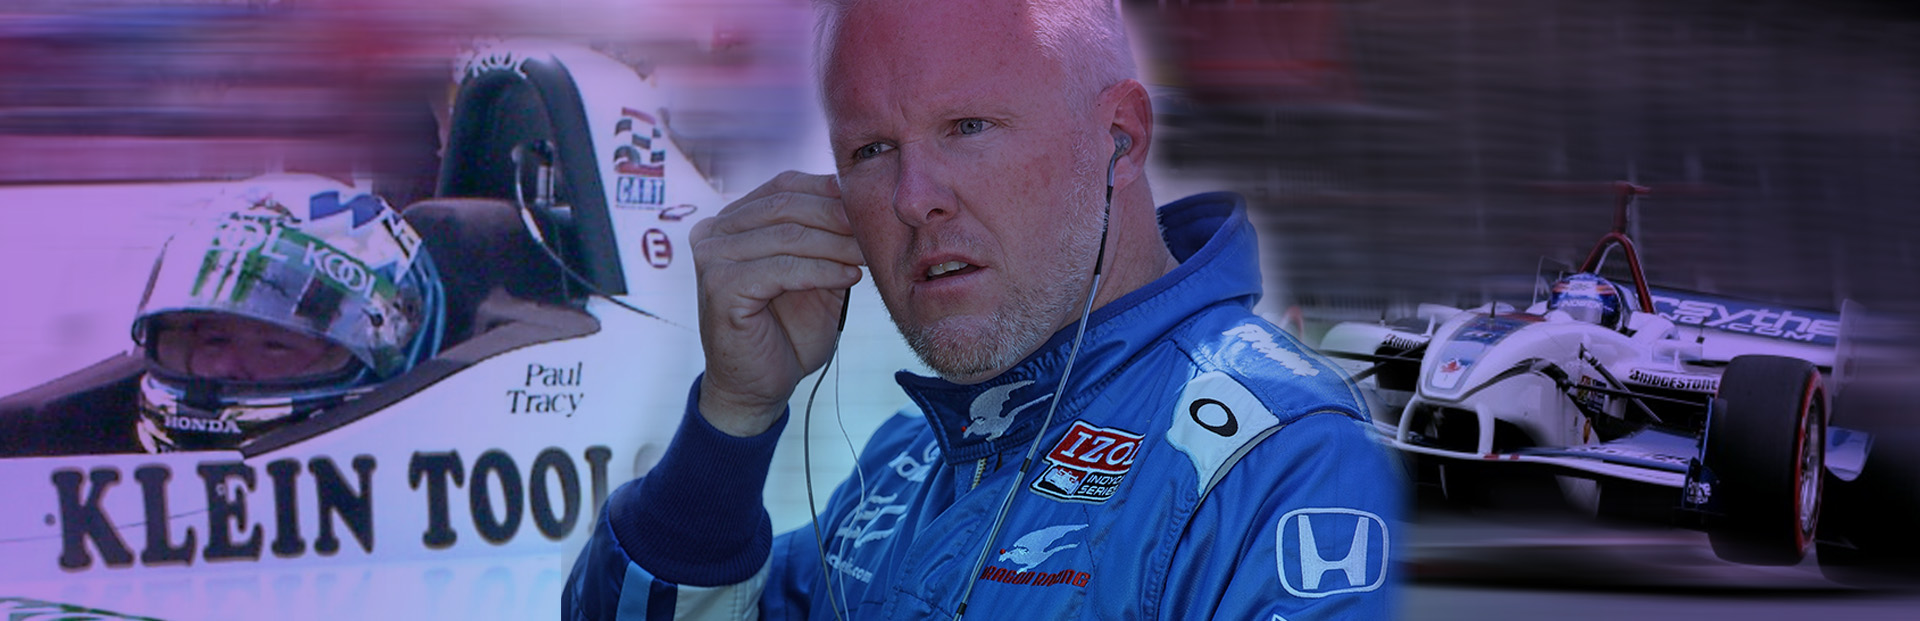 Catching up with Paul Tracy